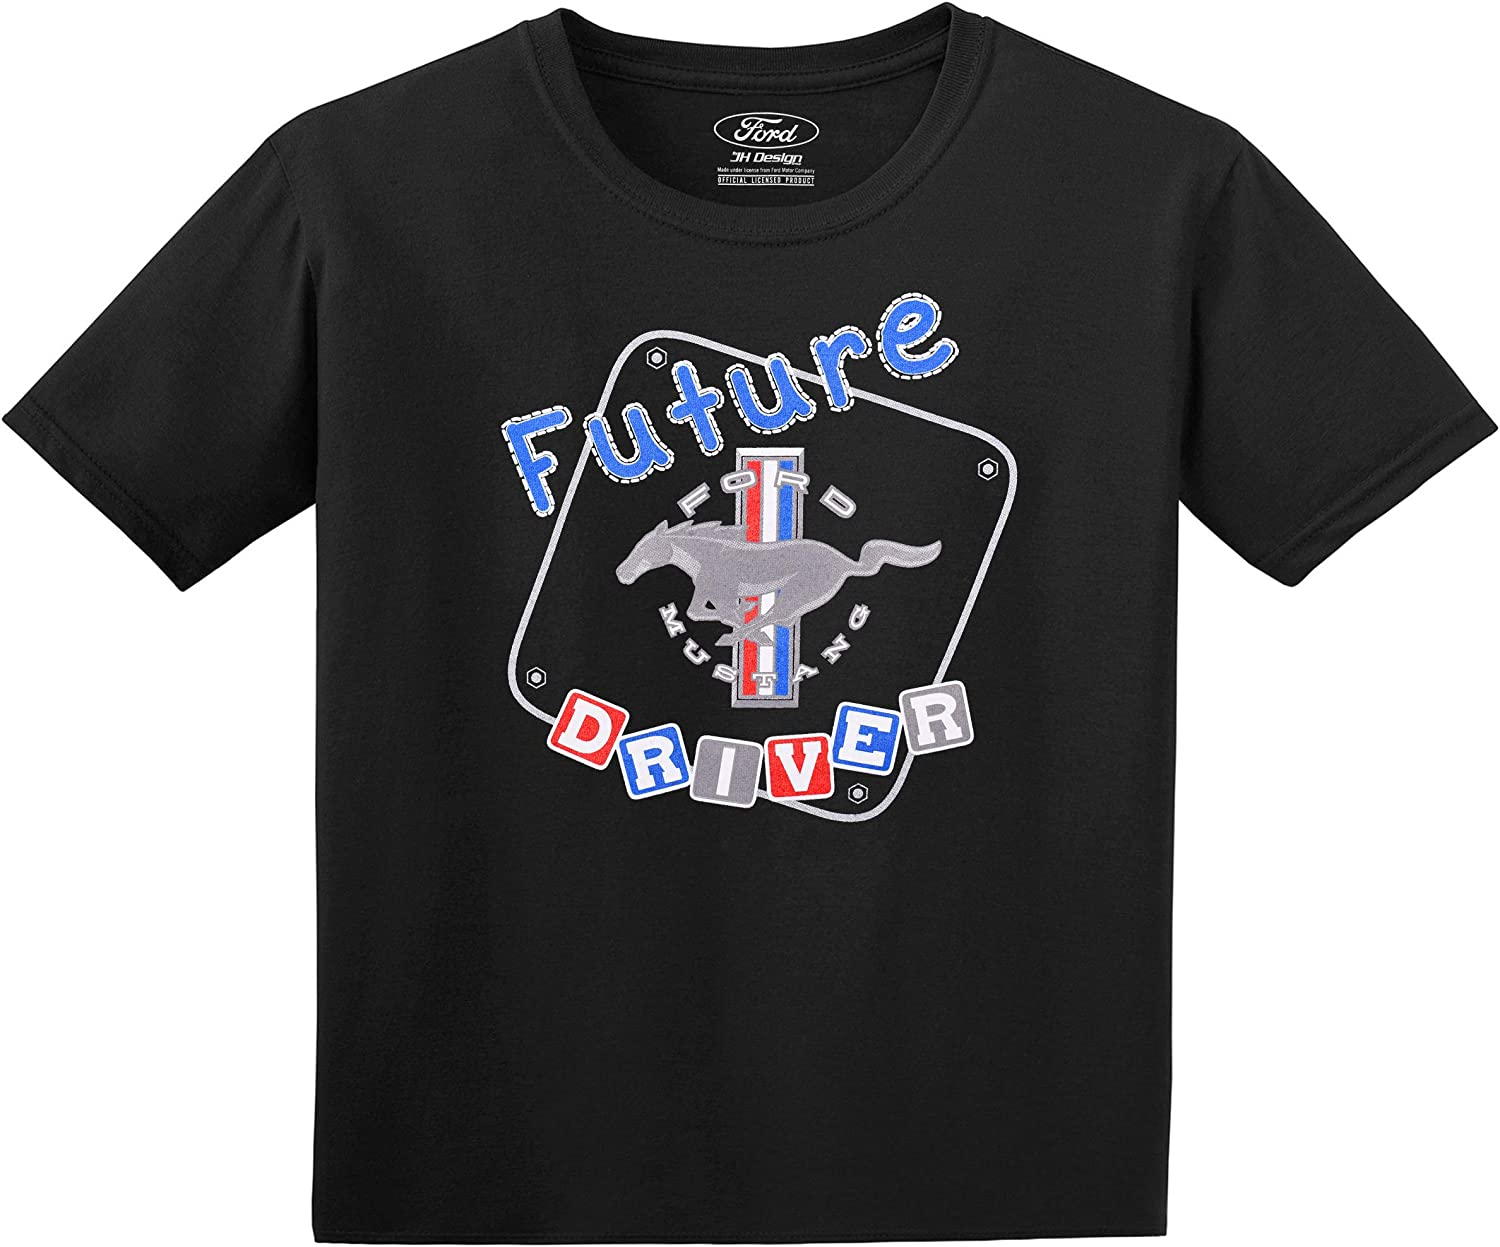 Ford GT American Horse Power Youth T-shirt Sports Race Car Licensed Kids